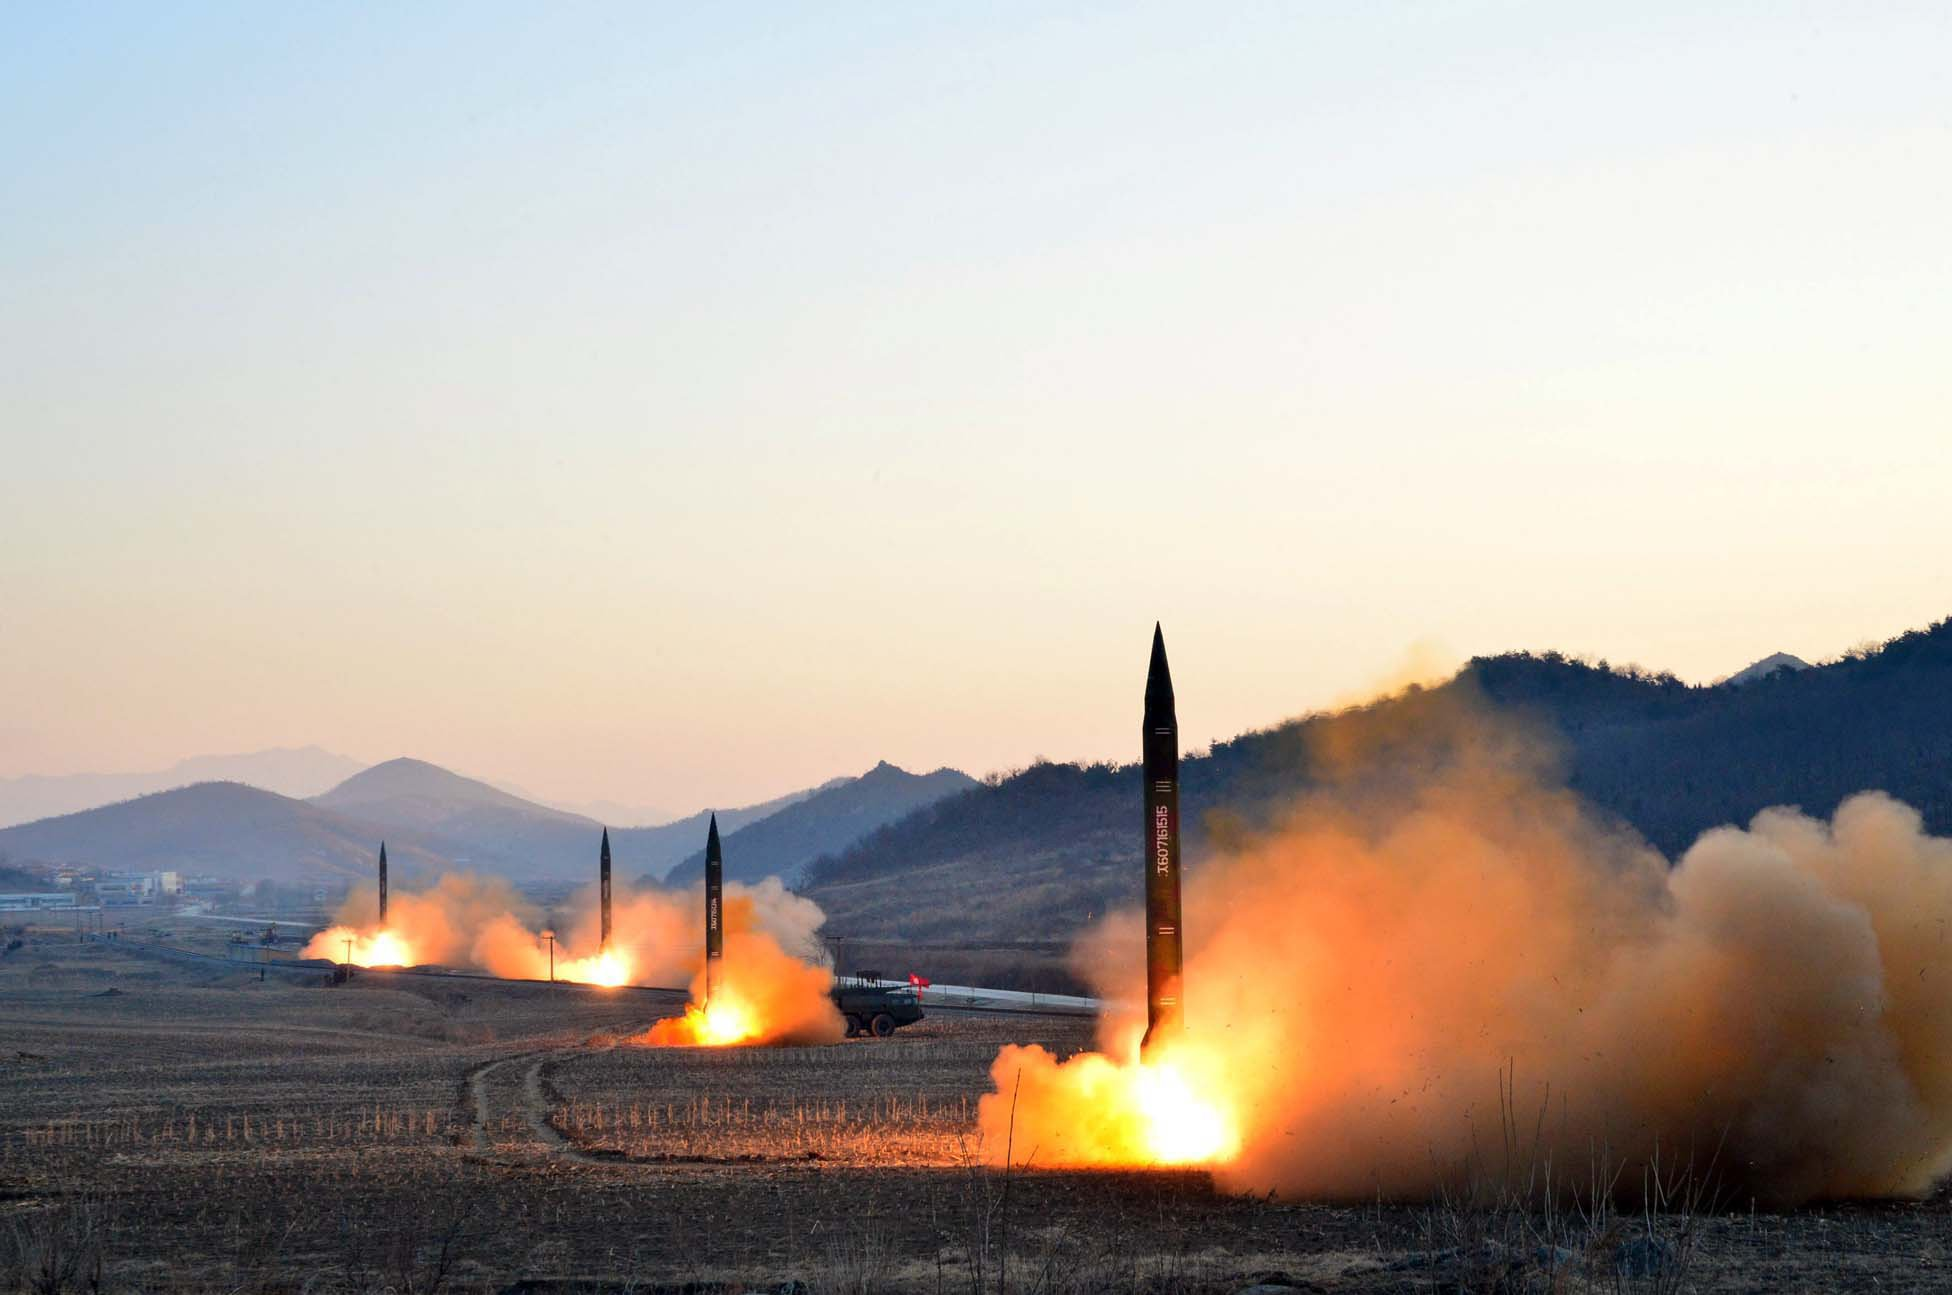 "This undated picture released by North Korea's Korean Central News Agency (KCNA) via KNS on March 7, 2017 shows the launch of four ballistic missiles by the Korean People's Army (KPA) during a military drill at an undisclosed location in North Korea. Nuclear-armed North Korea launched four ballistic missiles on March 6 in another challenge to President Donald Trump, with three landing provocatively close to America's ally Japan. / AFP PHOTO / KCNA VIA KNS / STR / South Korea OUT / REPUBLIC OF KOREA OUT ---EDITORS NOTE--- RESTRICTED TO EDITORIAL USE - MANDATORY CREDIT ""AFP PHOTO/KCNA VIA KNS"" - NO MARKETING NO ADVERTISING CAMPAIGNS - DISTRIBUTED AS A SERVICE TO CLIENTS THIS PICTURE WAS MADE AVAILABLE BY A THIRD PARTY. AFP CAN NOT INDEPENDENTLY VERIFY THE AUTHENTICITY, LOCATION, DATE AND CONTENT OF THIS IMAGE. THIS PHOTO IS DISTRIBUTED EXACTLY AS RECEIVED BY AFP. / (Photo credit should read STR/AFP/Getty Images)"